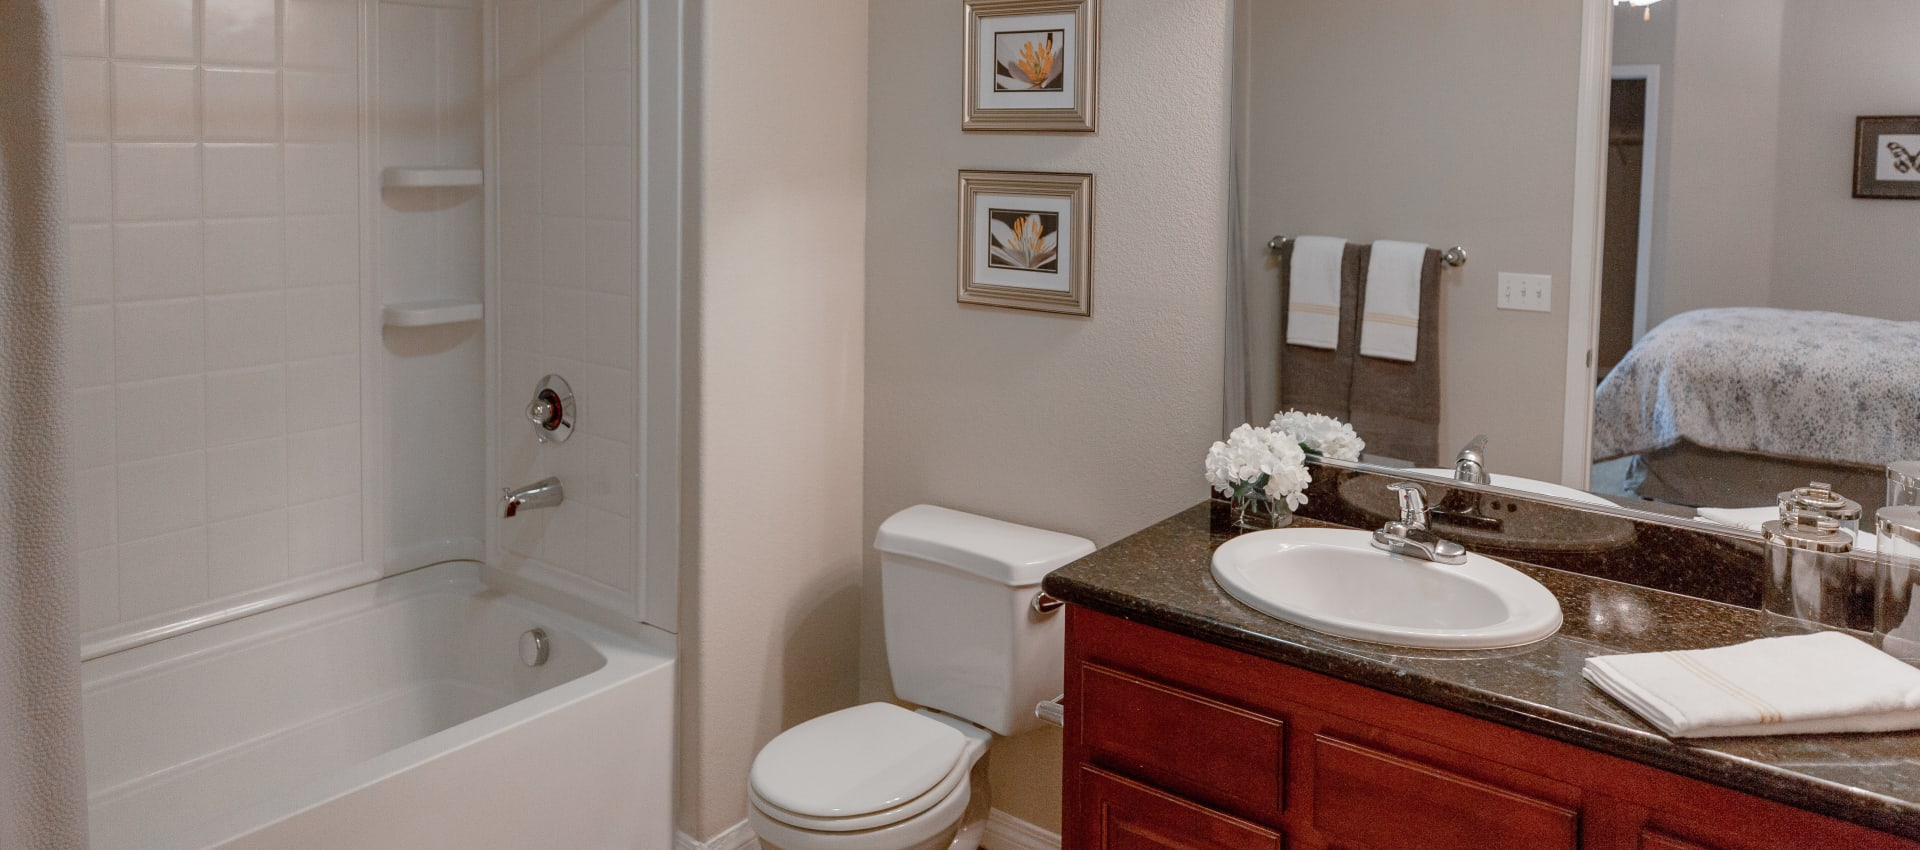 Quality bathroom at Wolf Ranch Condominium Rentals in Sacramento